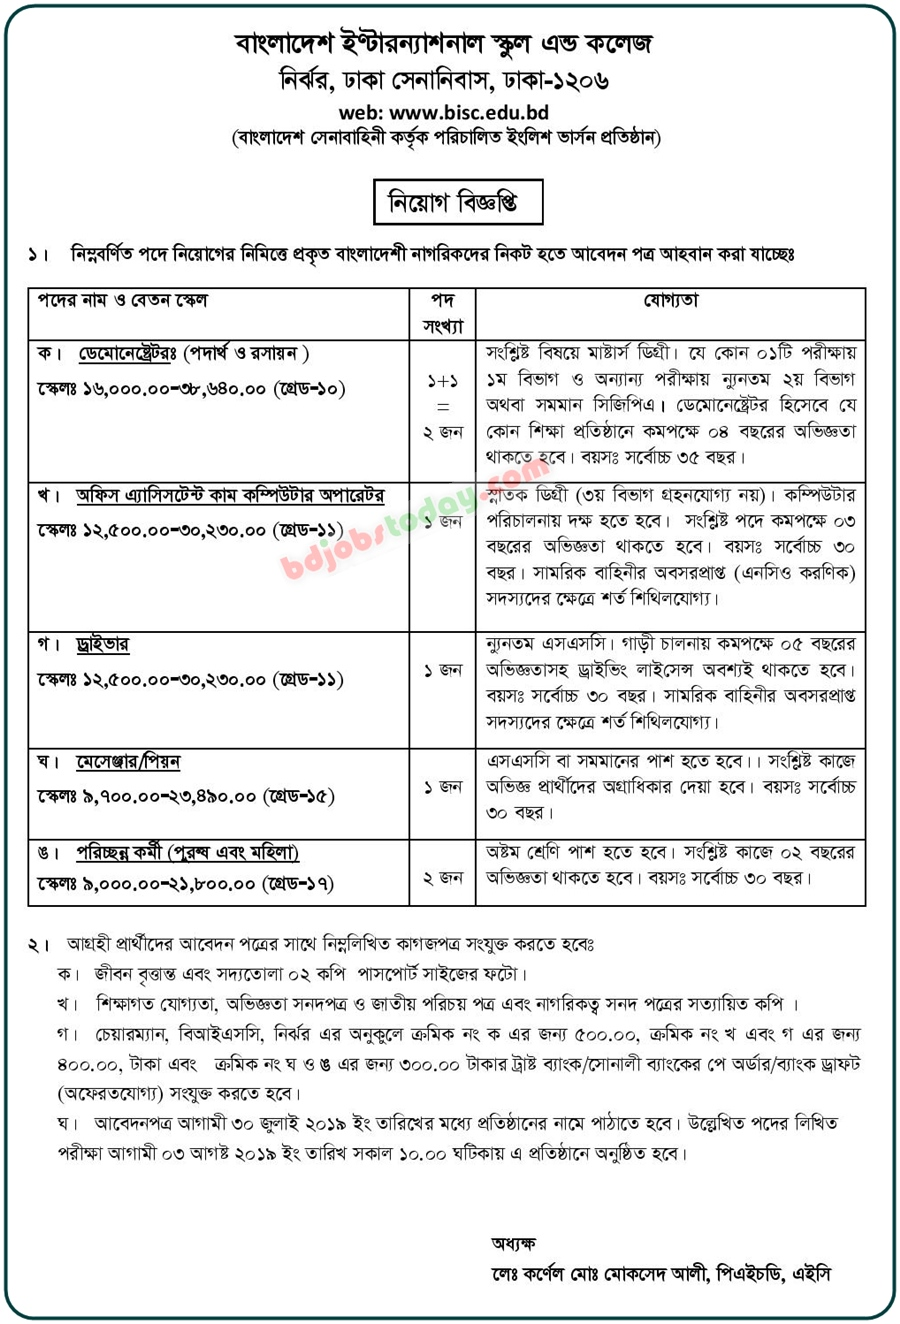 BISC Job Circular Apply 2019